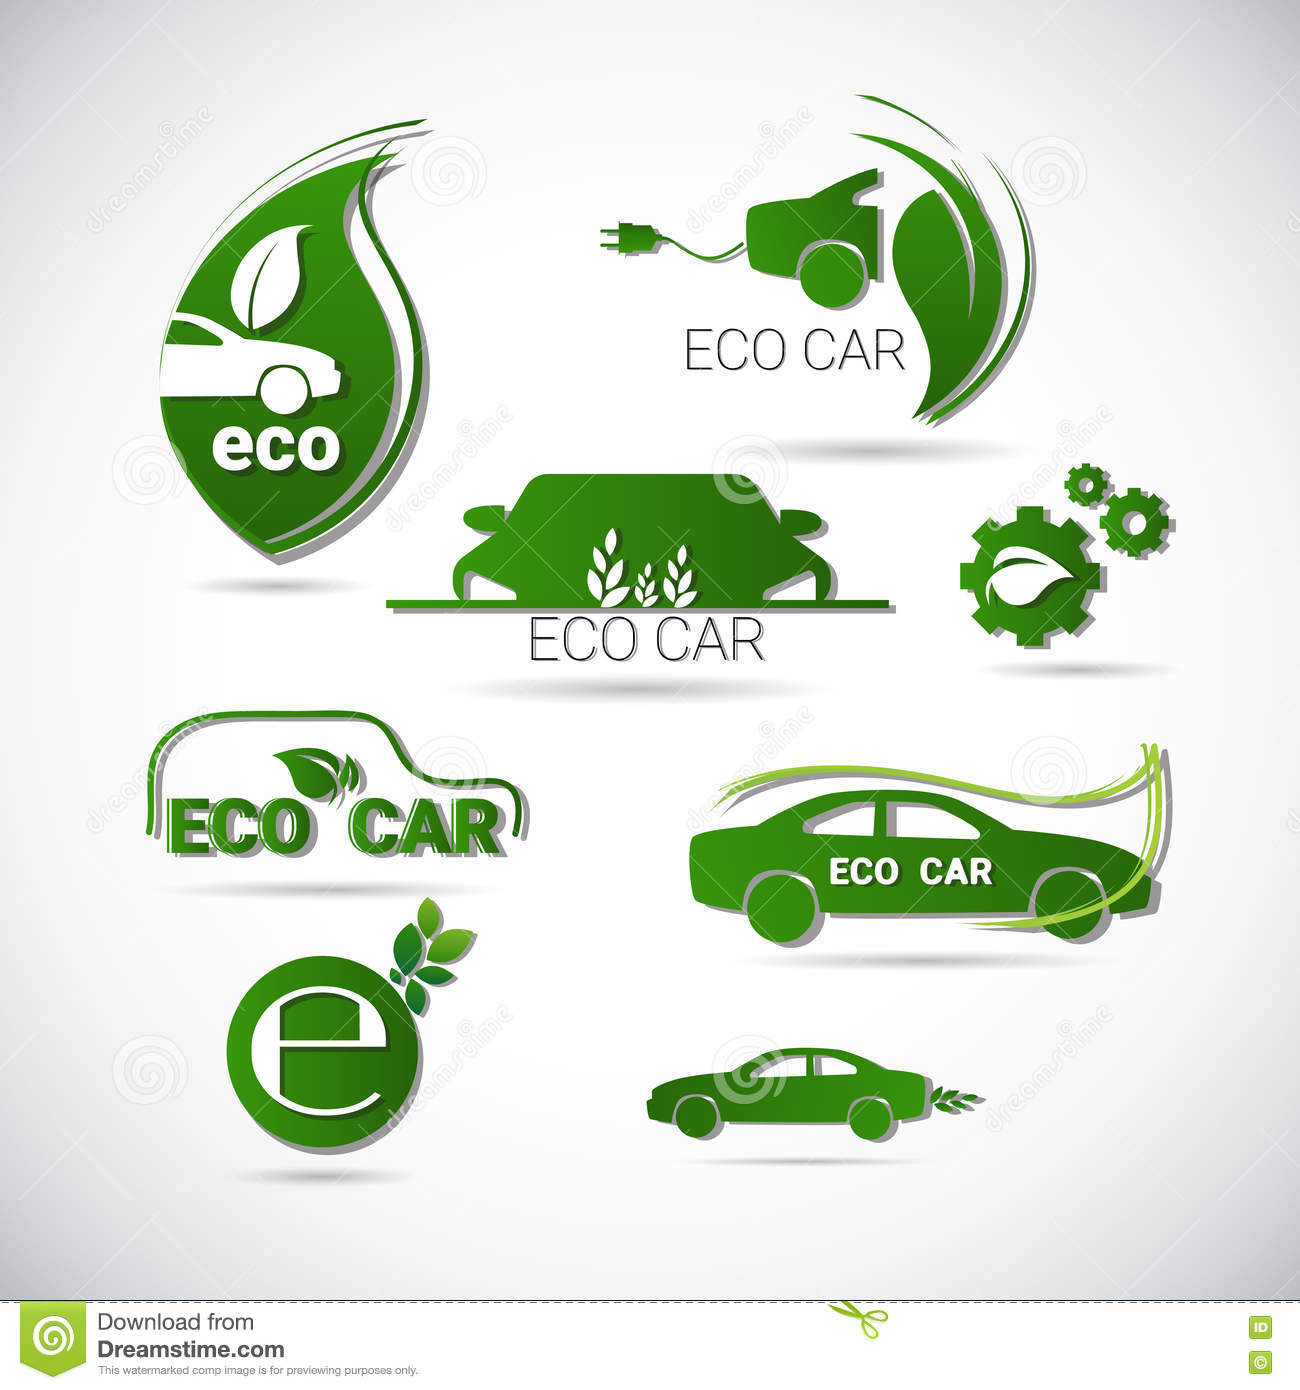 Illustration Stock Logo Vert R C3 A9gl C3 A9 D Environnement De Voiture  C3 A9lectrique D Eco De Machine D Ic Ne Amicale De Web Image79682023 on electric car illustration